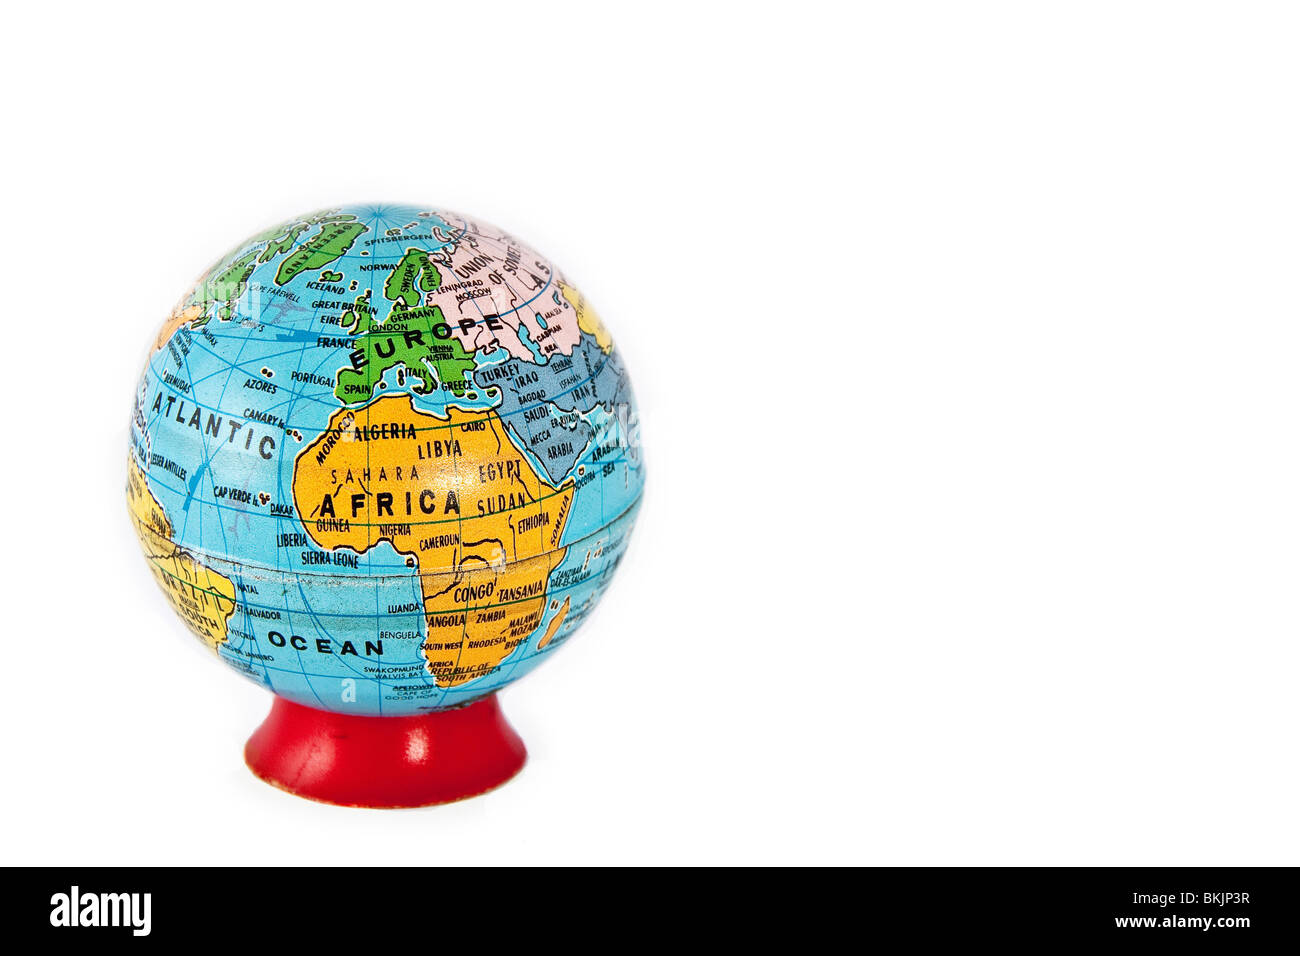 A model terrain globe. Europe and Africa are shown - Stock Image